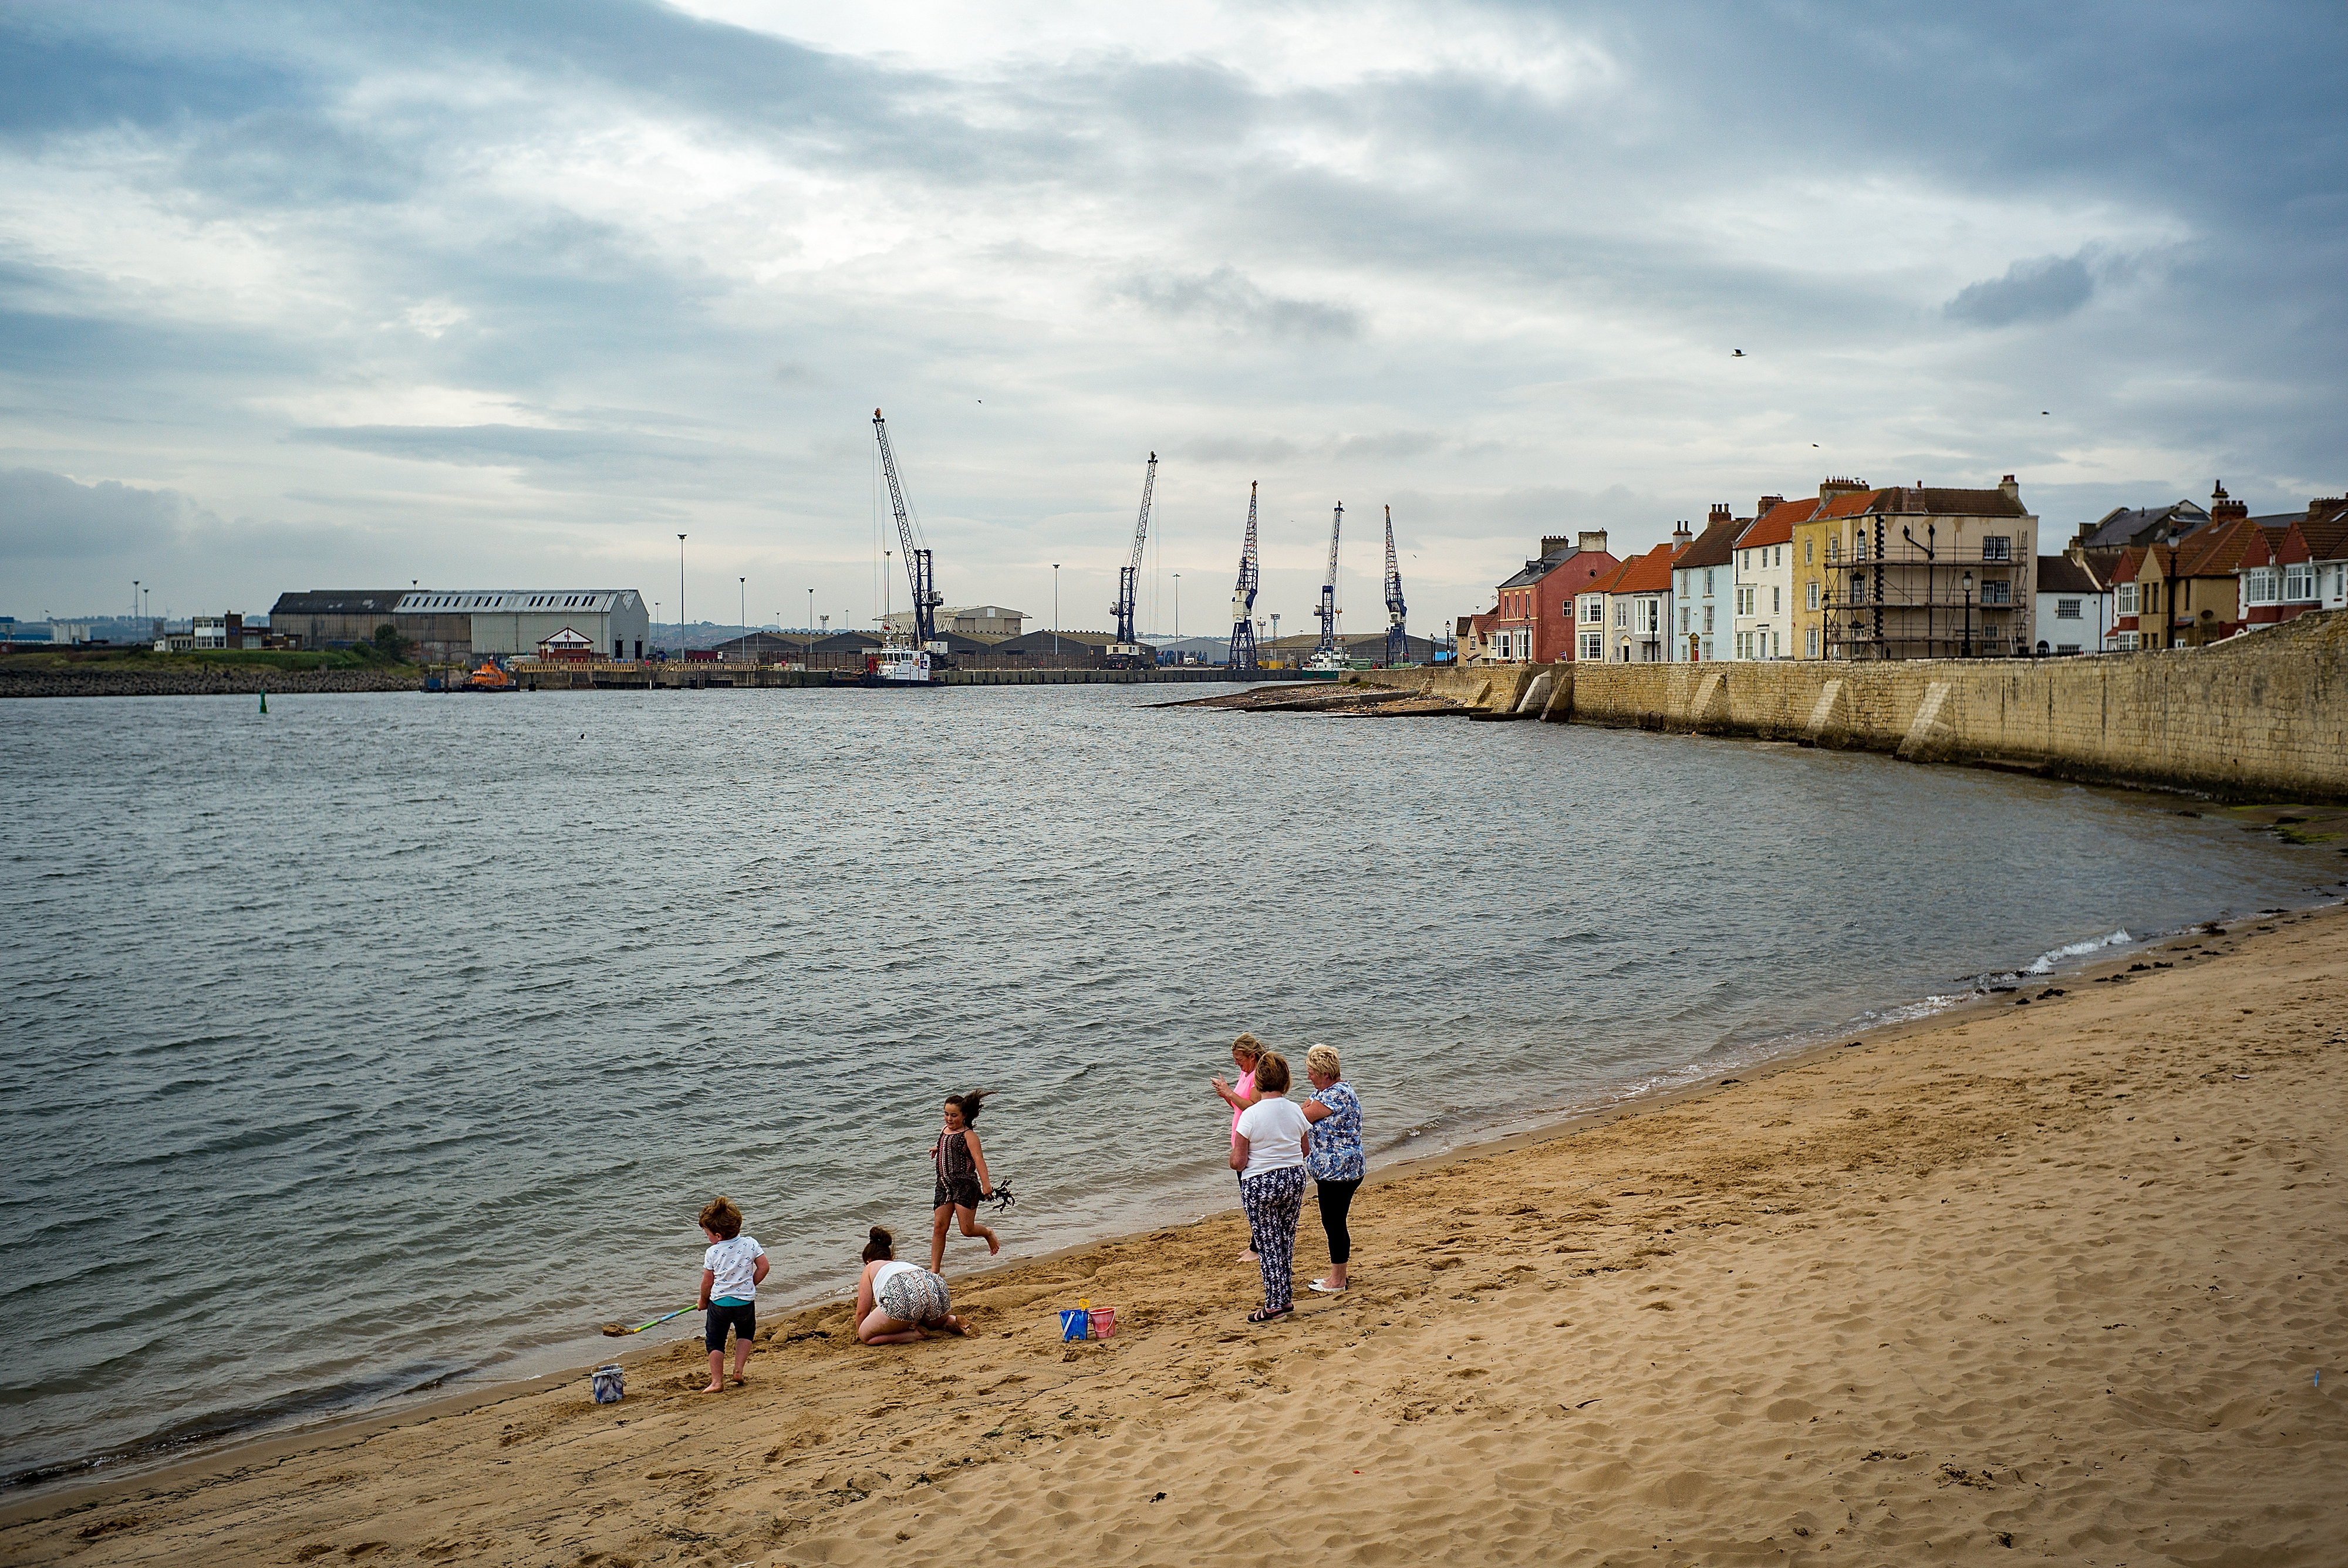 HARTLEPOOL, ENGLAND - SEPTEMBER 04:  Locals spend time on the beach near the docks in the Headland area of Hartlepool,on September 4, 2017 in Hartlepool, England. Hartlepool in the North East of England is one of the many coastal towns lagging behind inland areas with some of the worst levels of economic and social deprivation in the country. The Social Market Foundation (SMF) found that 85% of Great Britain's 98 coastal local authorities had pay levels below the national average for 2016. The government has announced that it will give 40 million GBP to encourage tourism and boost employment in the areas.  (Photo by Christopher Furlong/Getty Images)